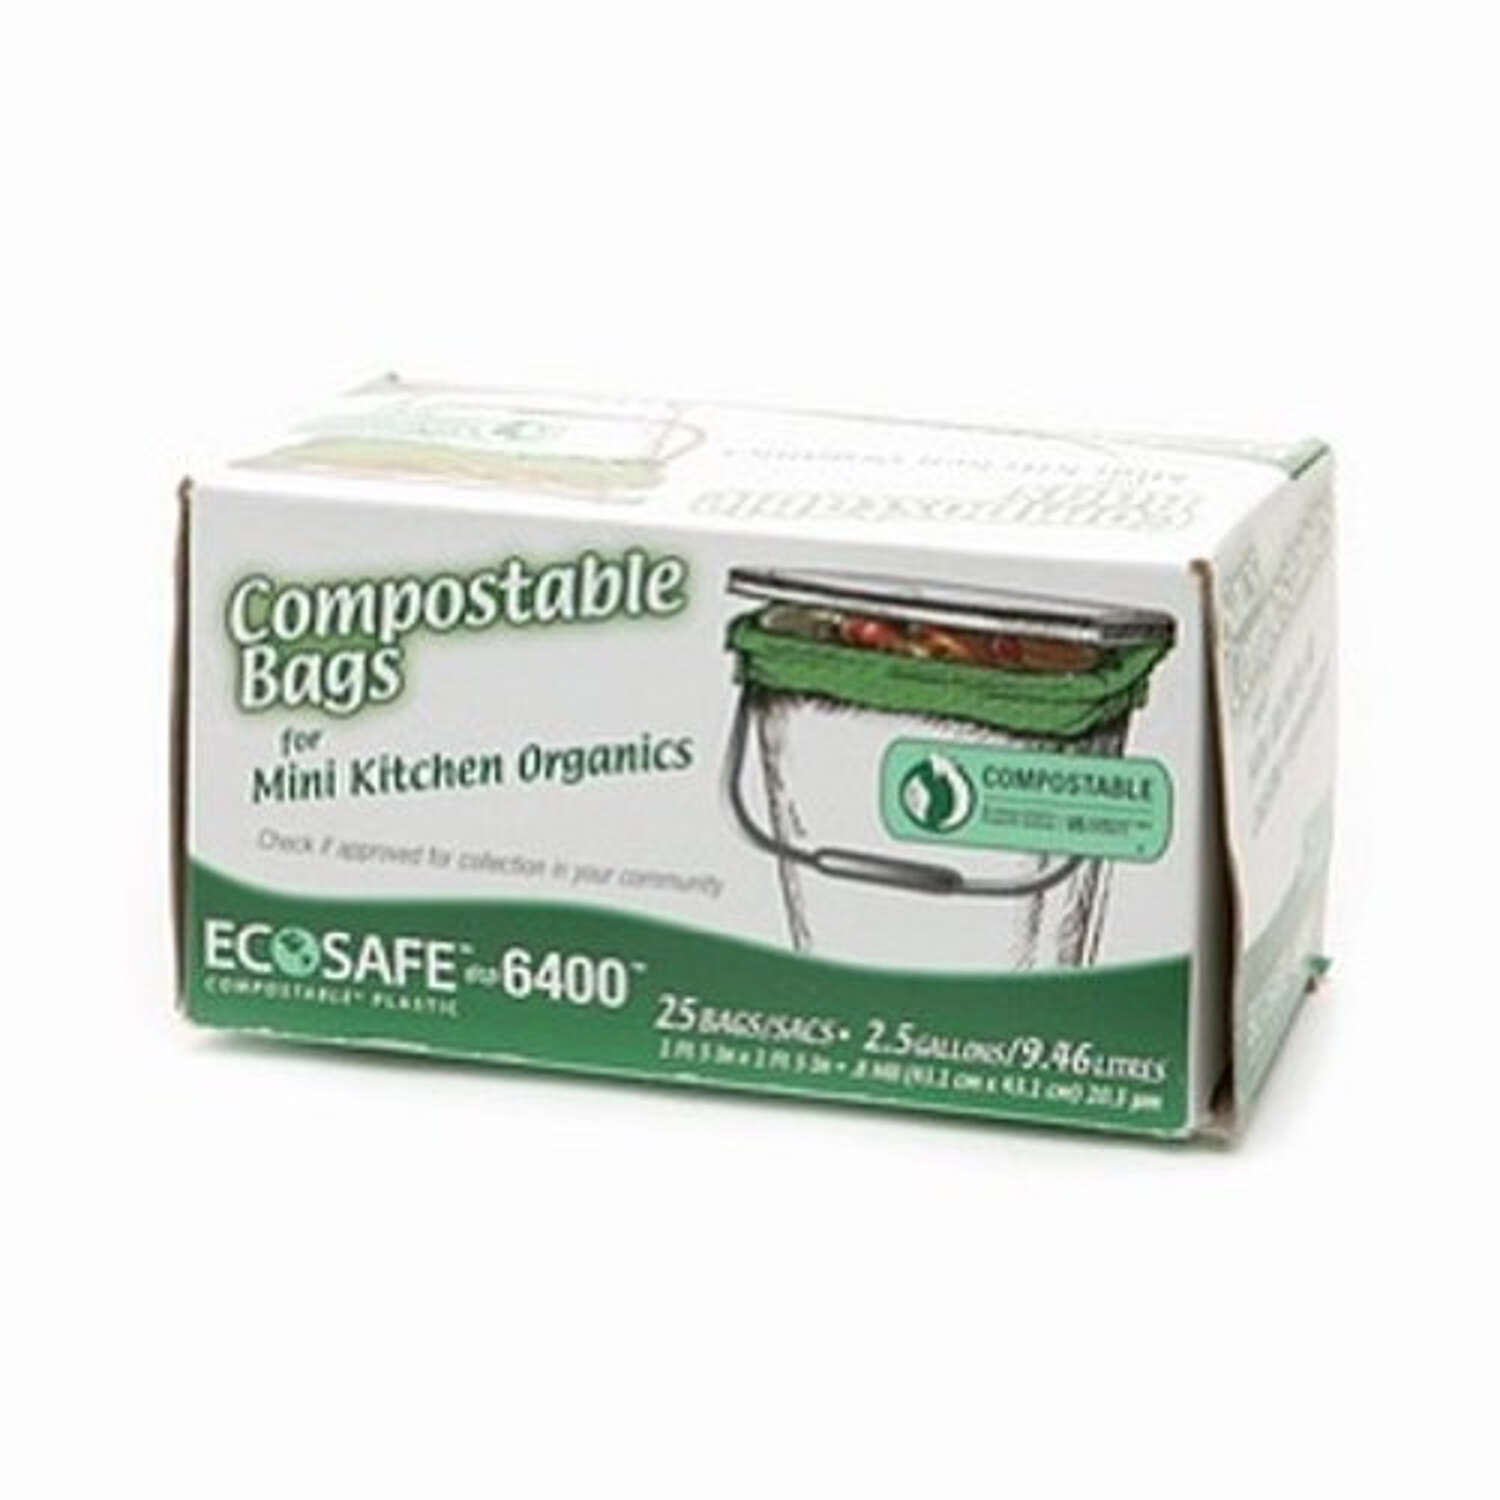 Eco-Safe  Compostable  2.6 gal. Trash Bags  Twist Tie  25 pk